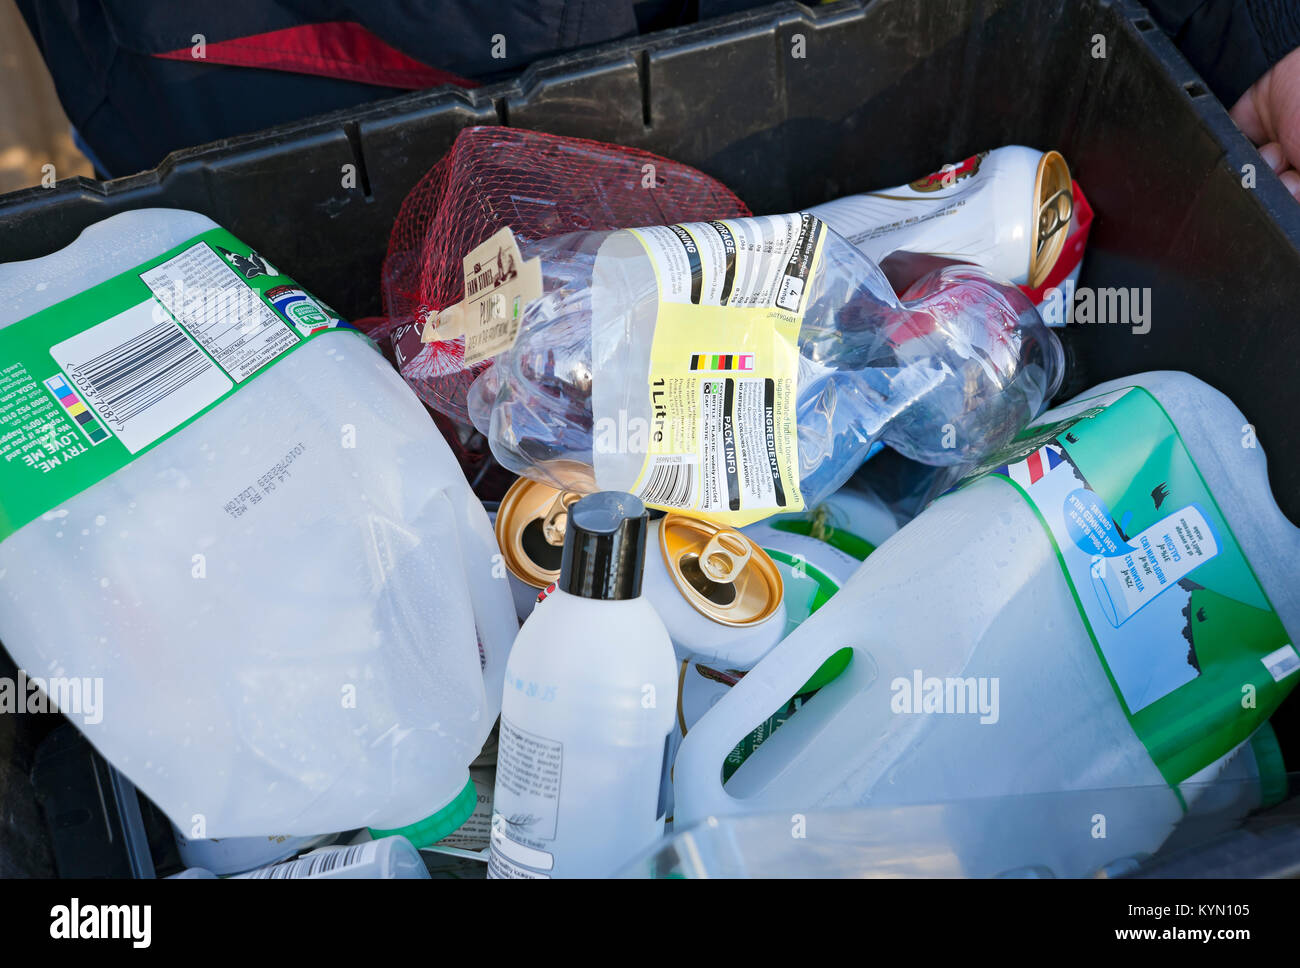 Plastics and Tins in a Recycling Box England UK United Kingdom GB Great Britain - Stock Image